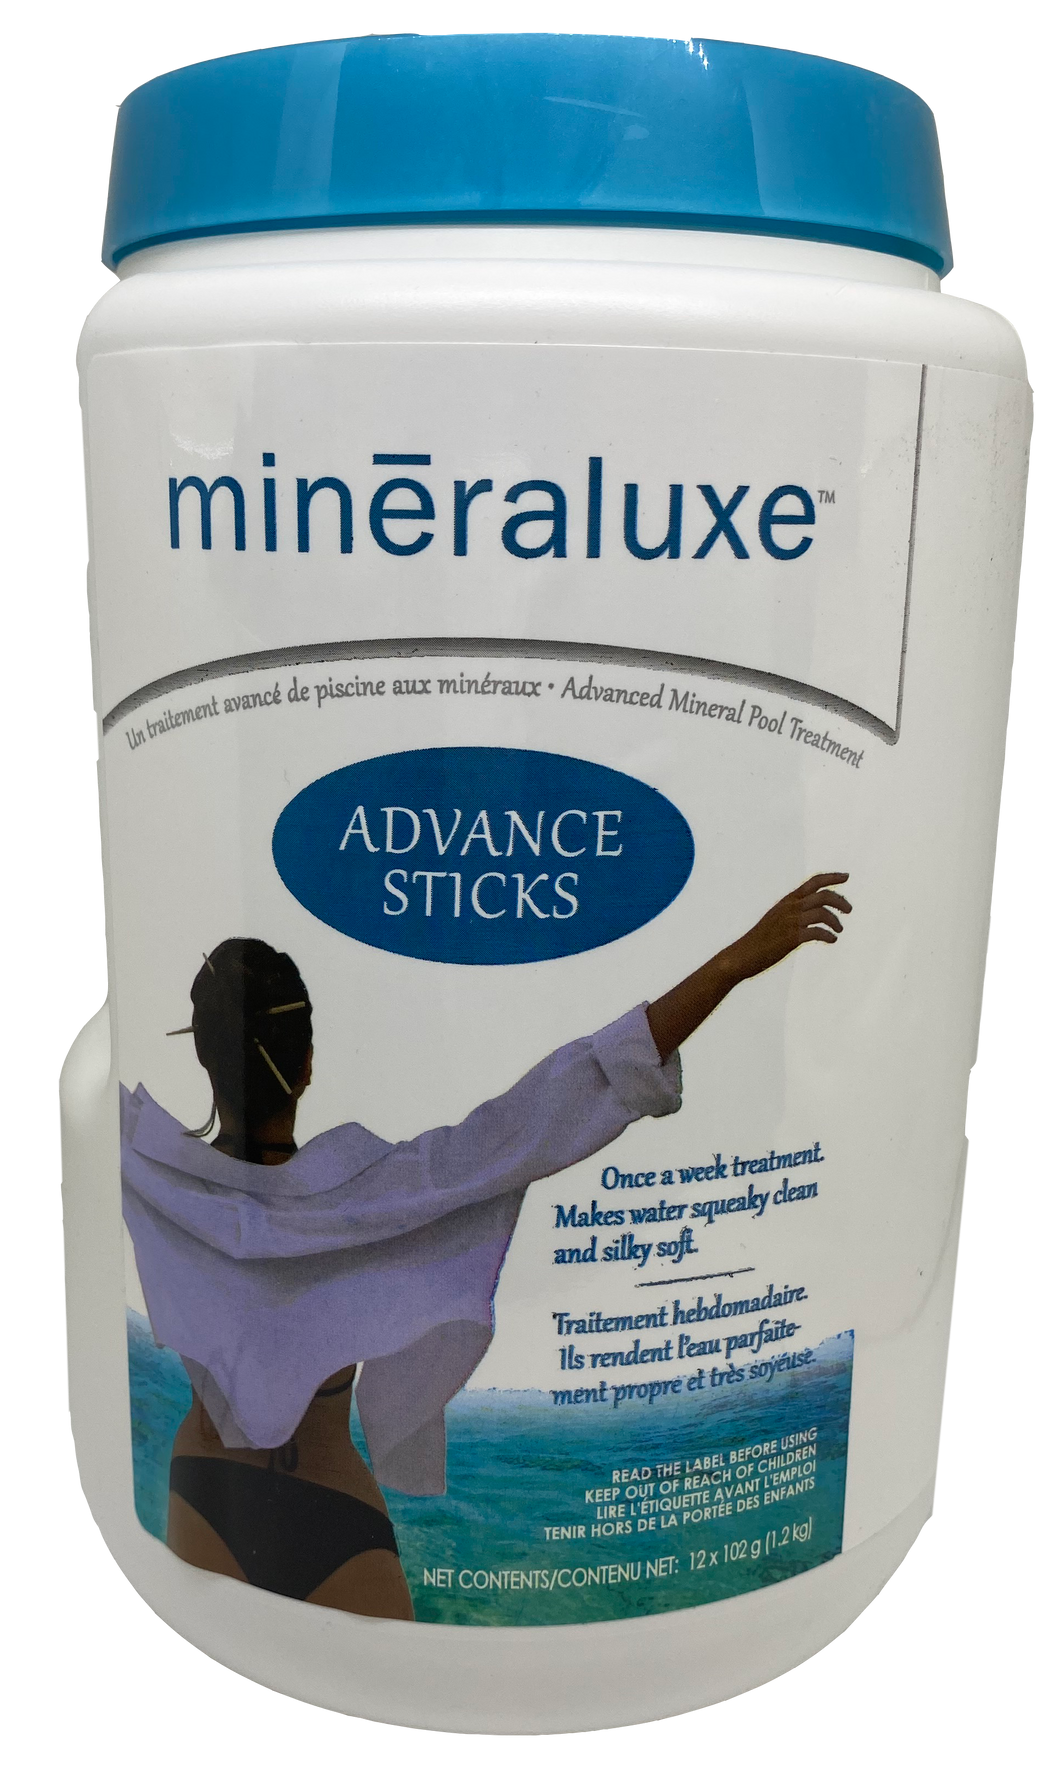 Mineraluxe Advance Sticks for Pools (x12)